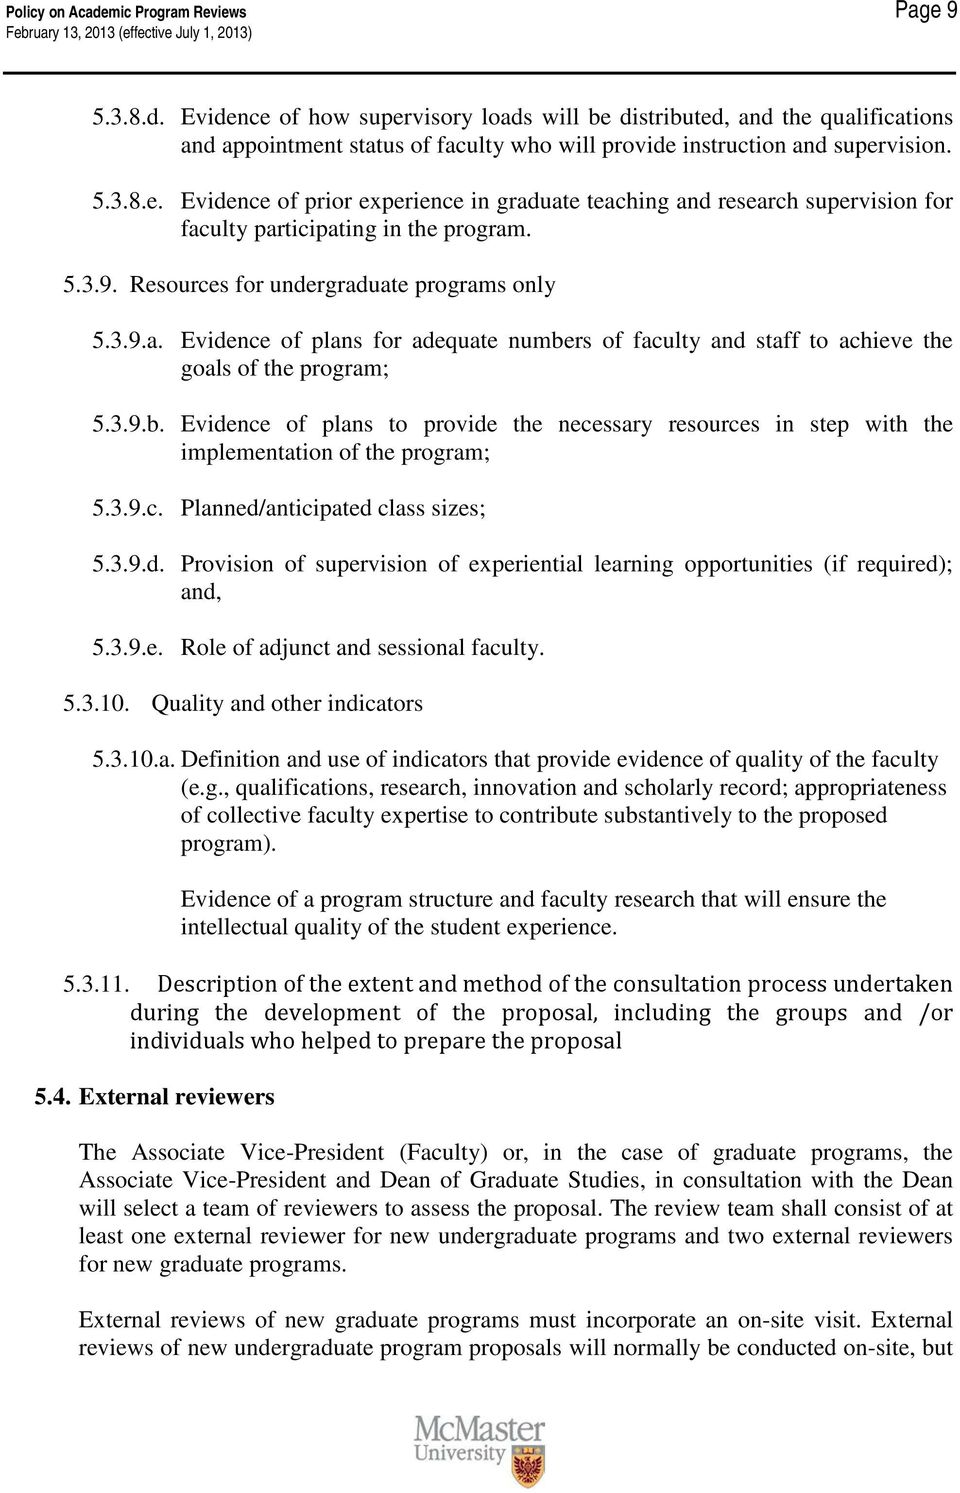 3.9.b. Evidence of plans to provide the necessary resources in step with the implementation of the program; 5.3.9.c. Planned/anticipated class sizes; 5.3.9.d. Provision of supervision of experiential learning opportunities (if required); and, 5.